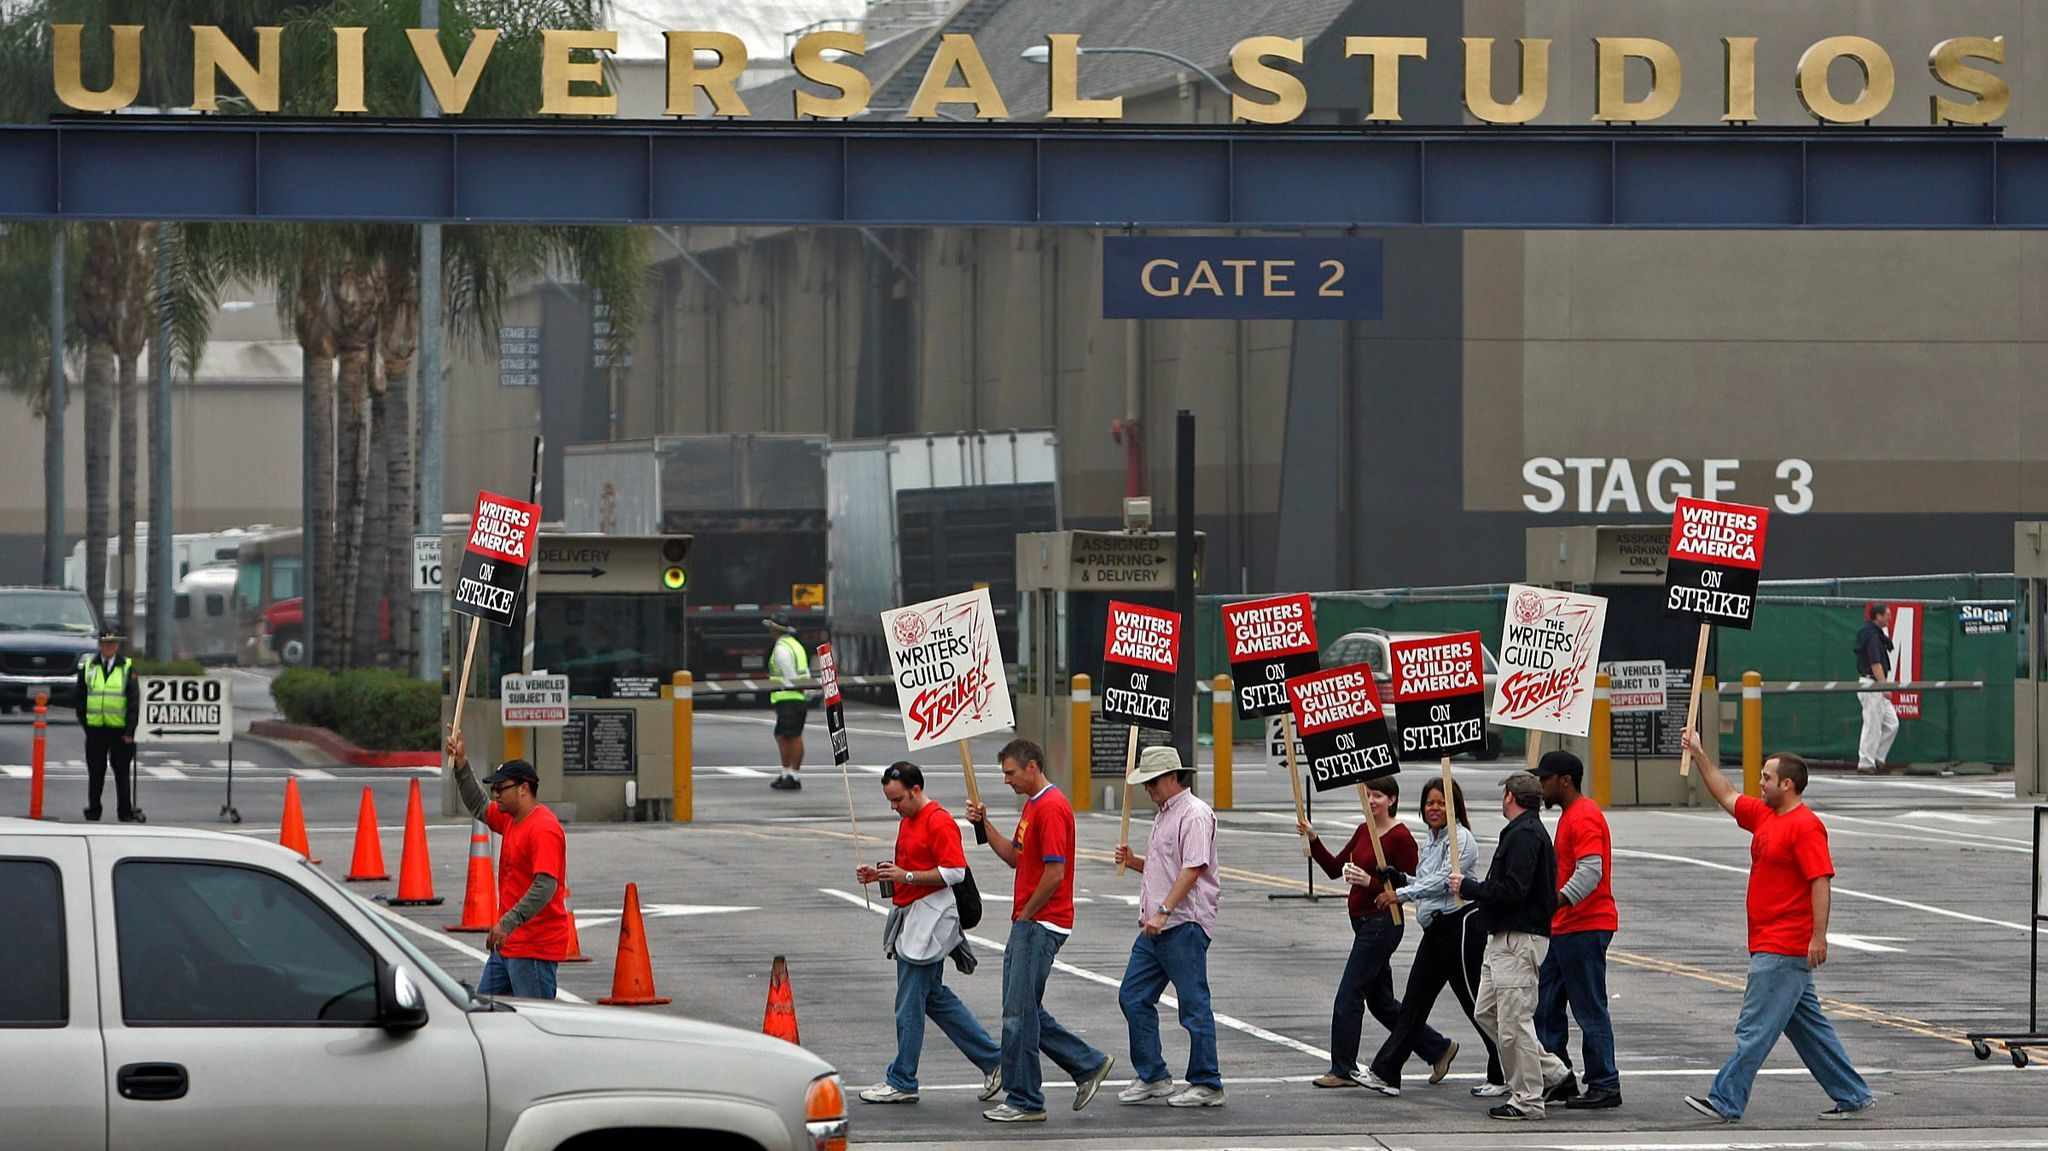 Writers Guild of America strikers in 2007 picket outside Universal Studios.